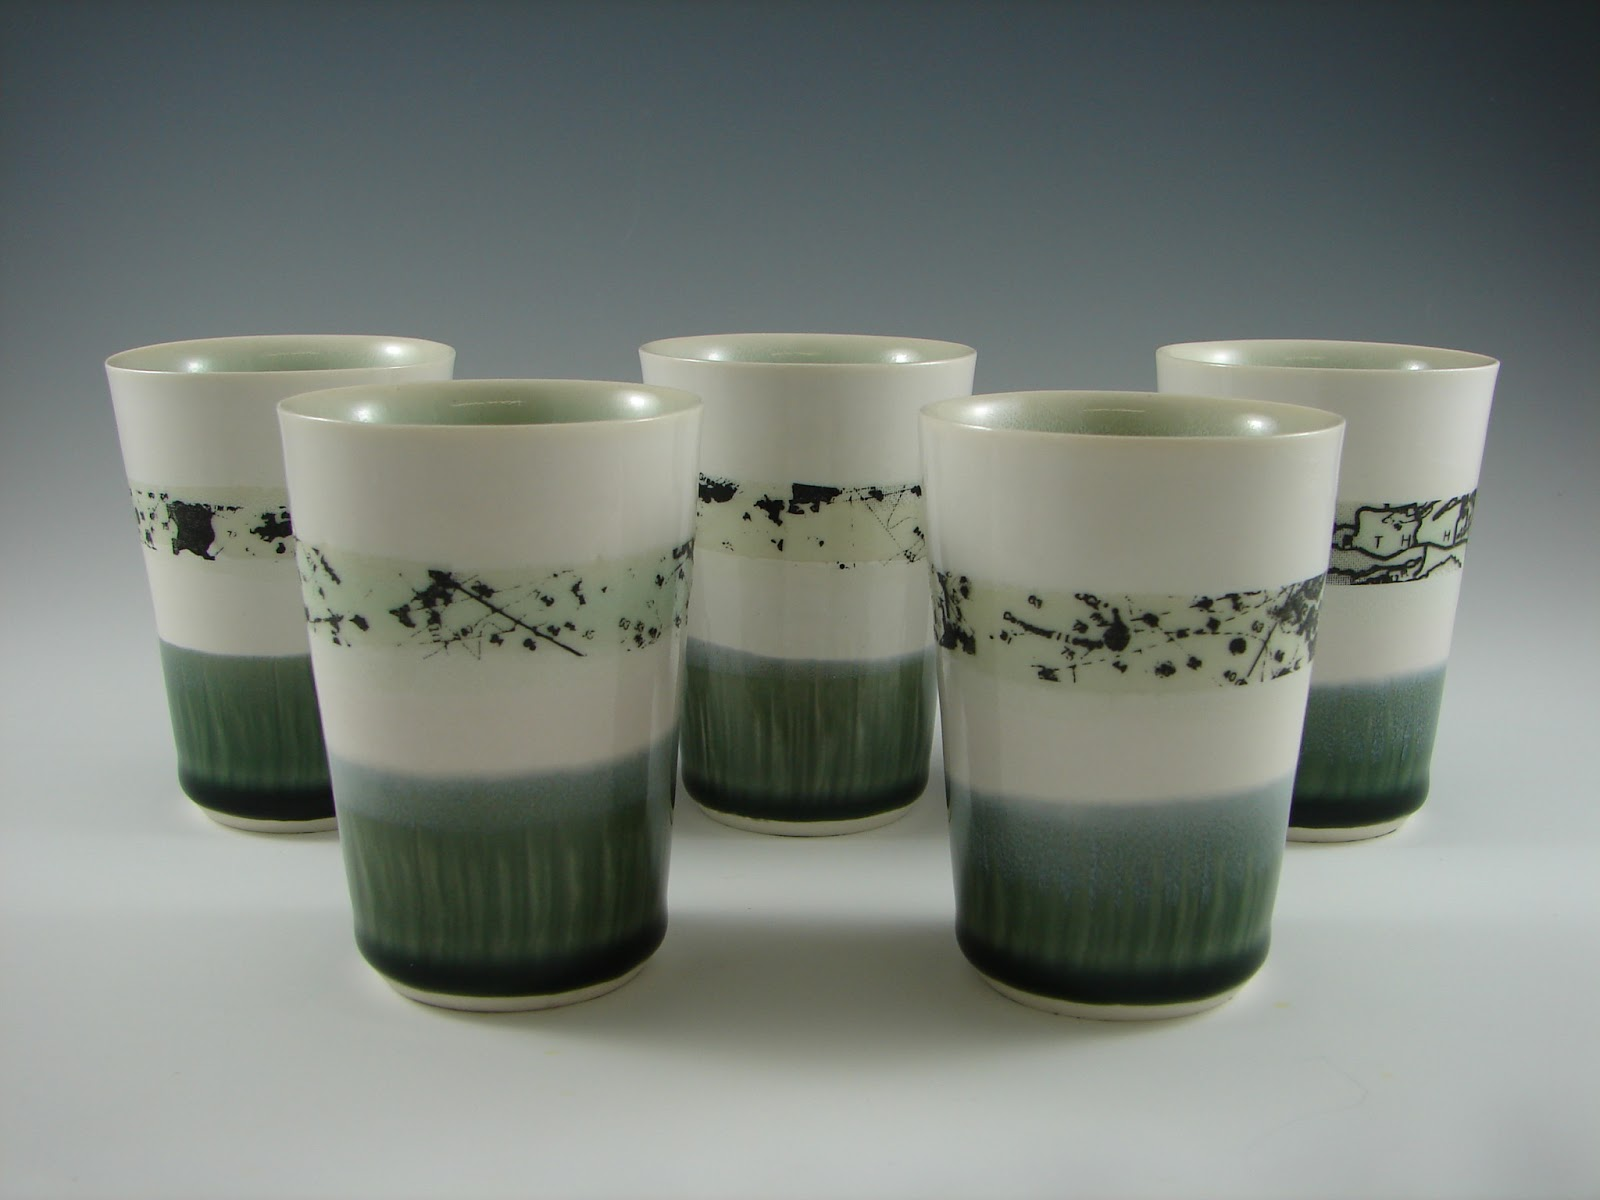 4oz. Cups, porcelain and decals, H. 3.5'', 2012.